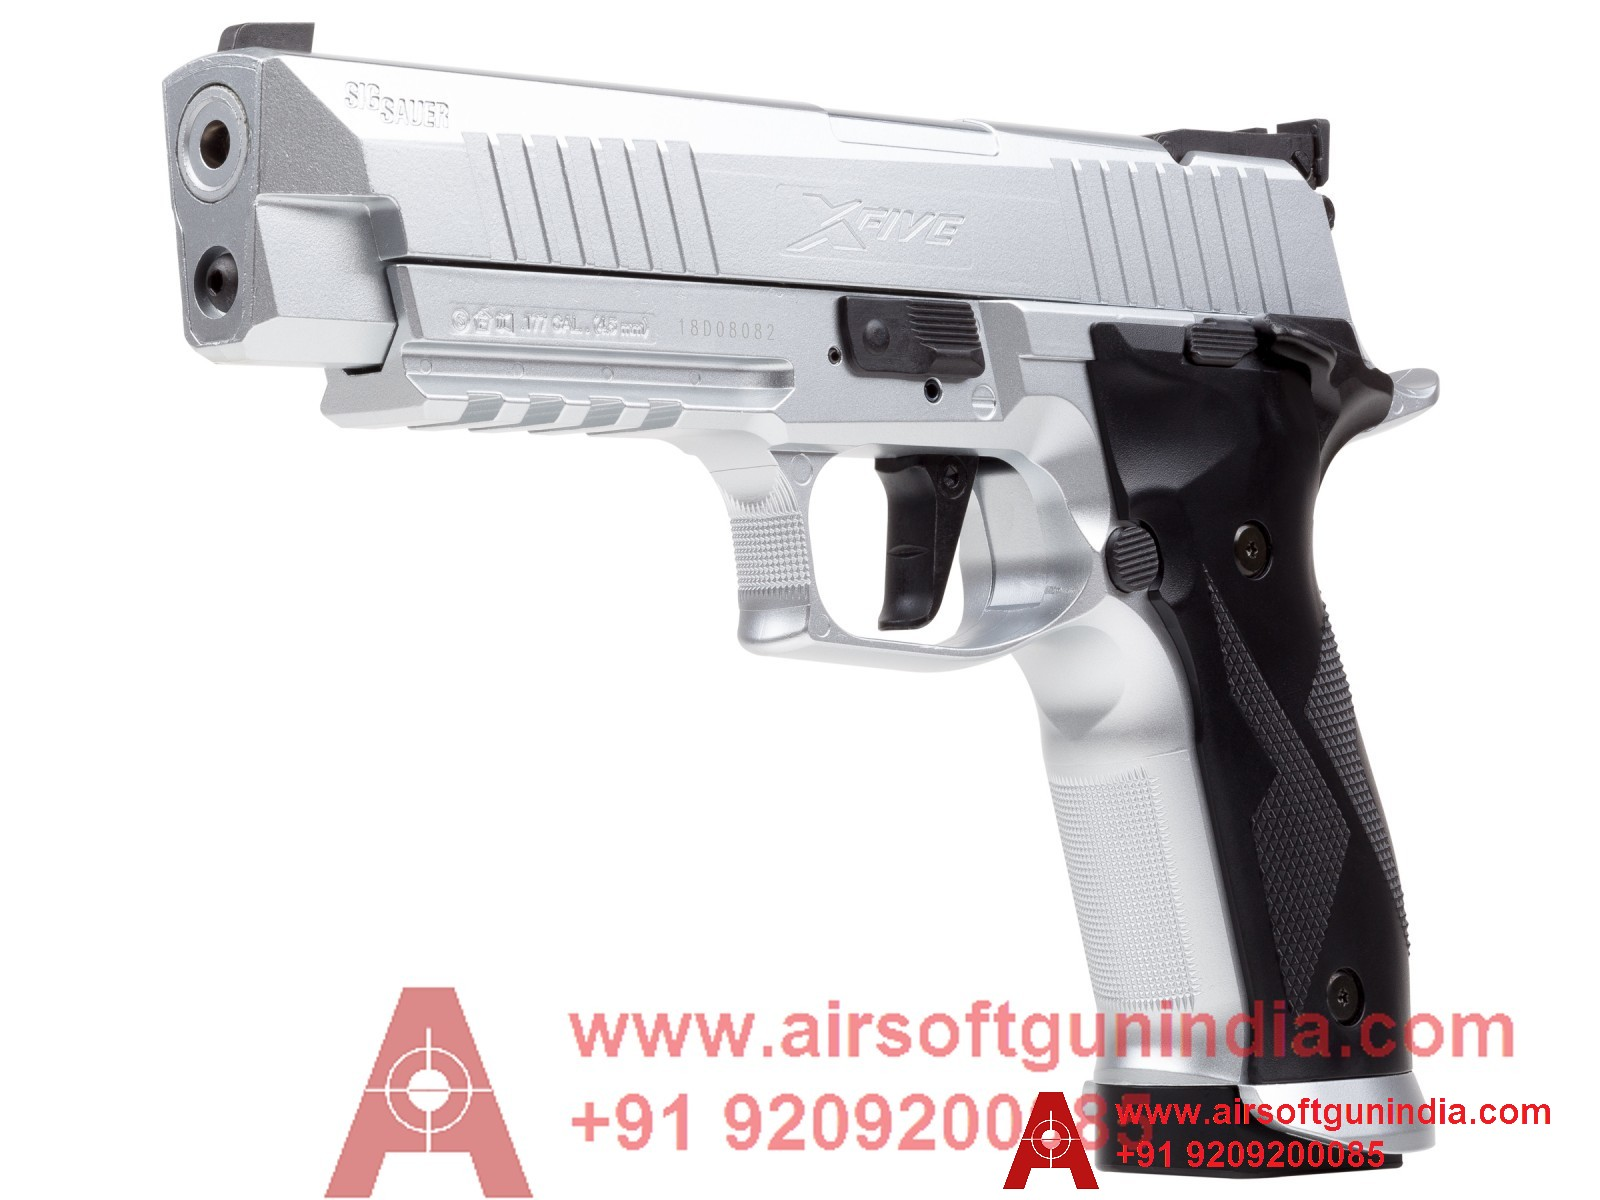 Imported Air Gun India